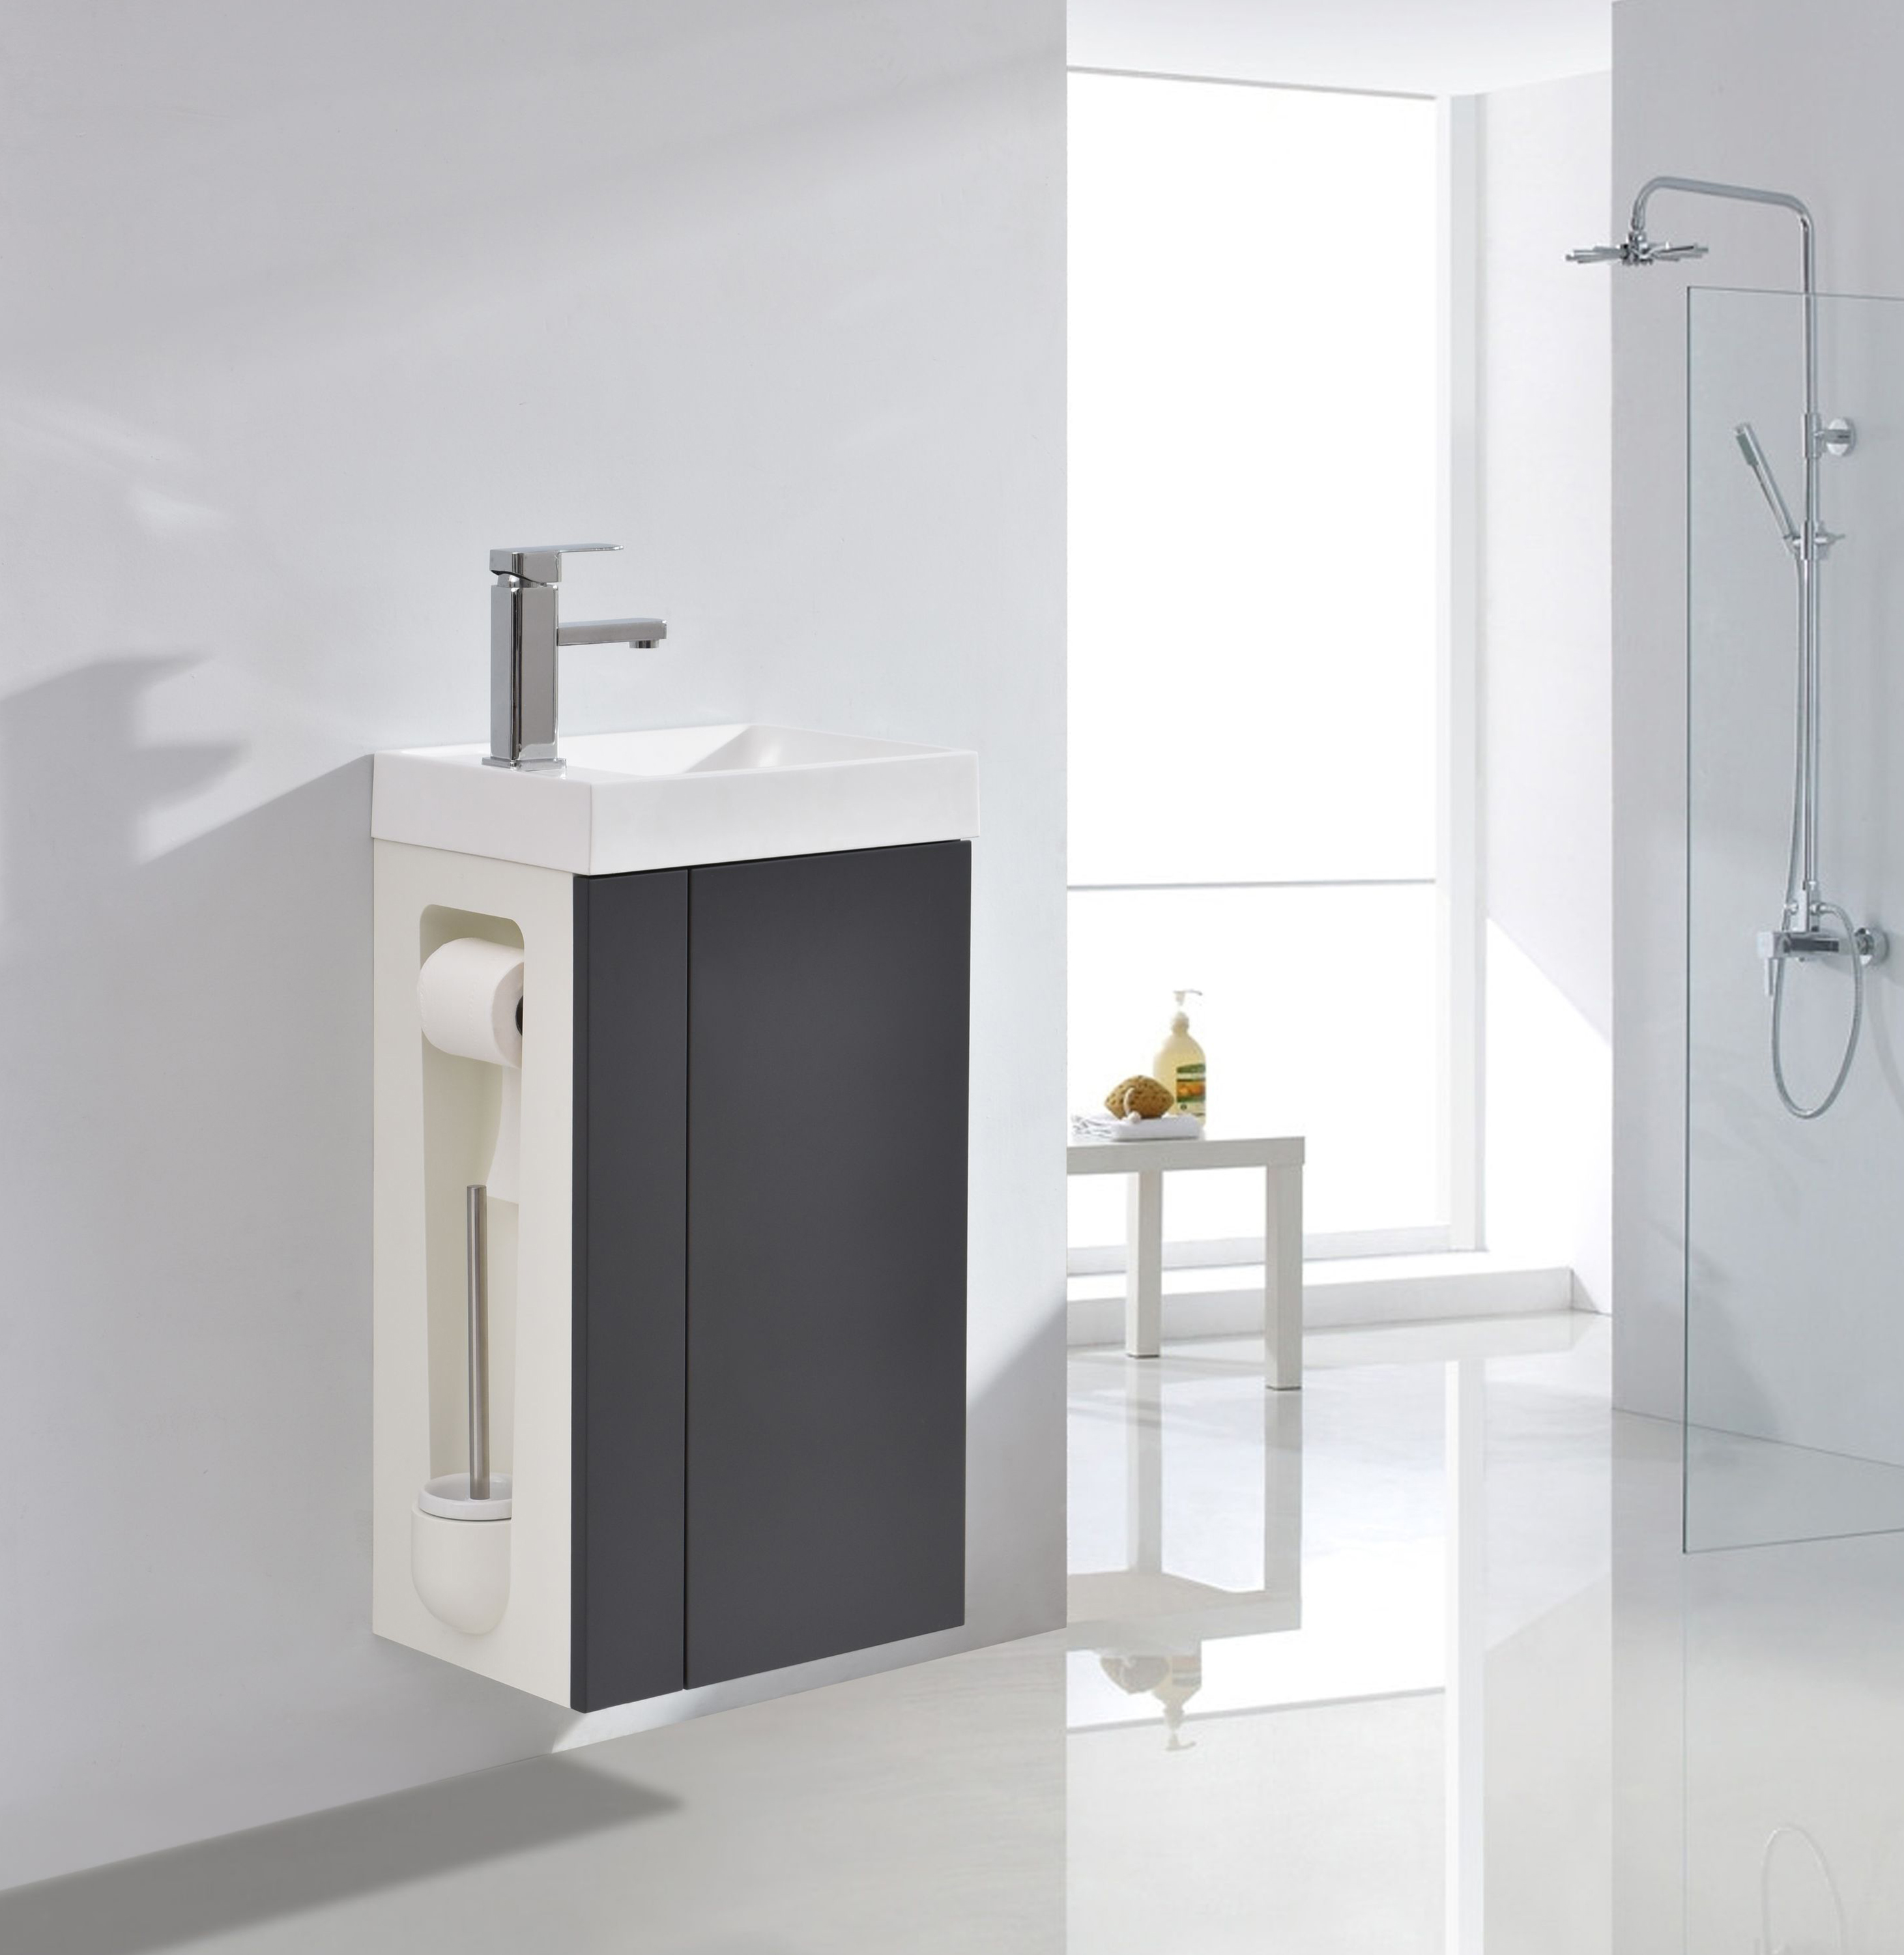 Vanity Unit with Toilet Brush and Toilet Paper Holder - Compact 400 - Matt Anthracite - optional mirror or mirror cabinet